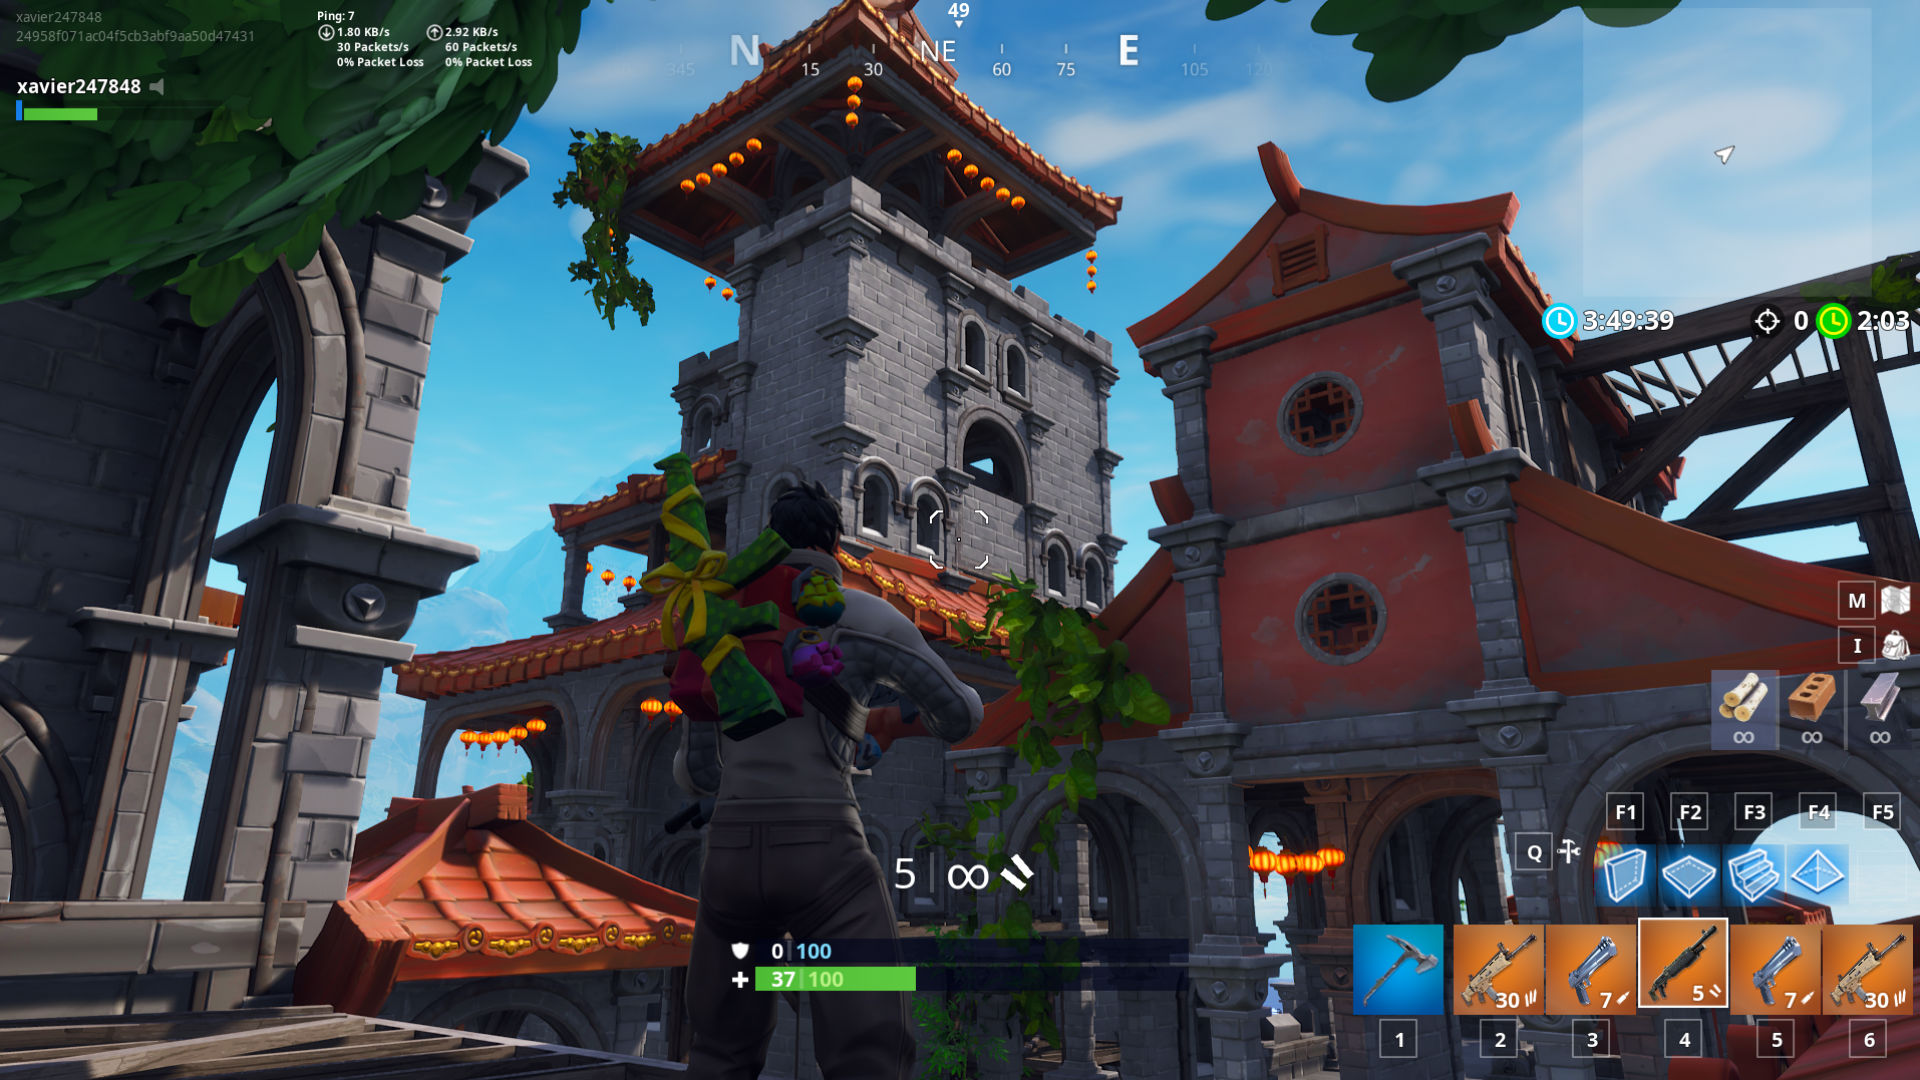 fortnite creative codes twisted temple - fortnite creative training course codes